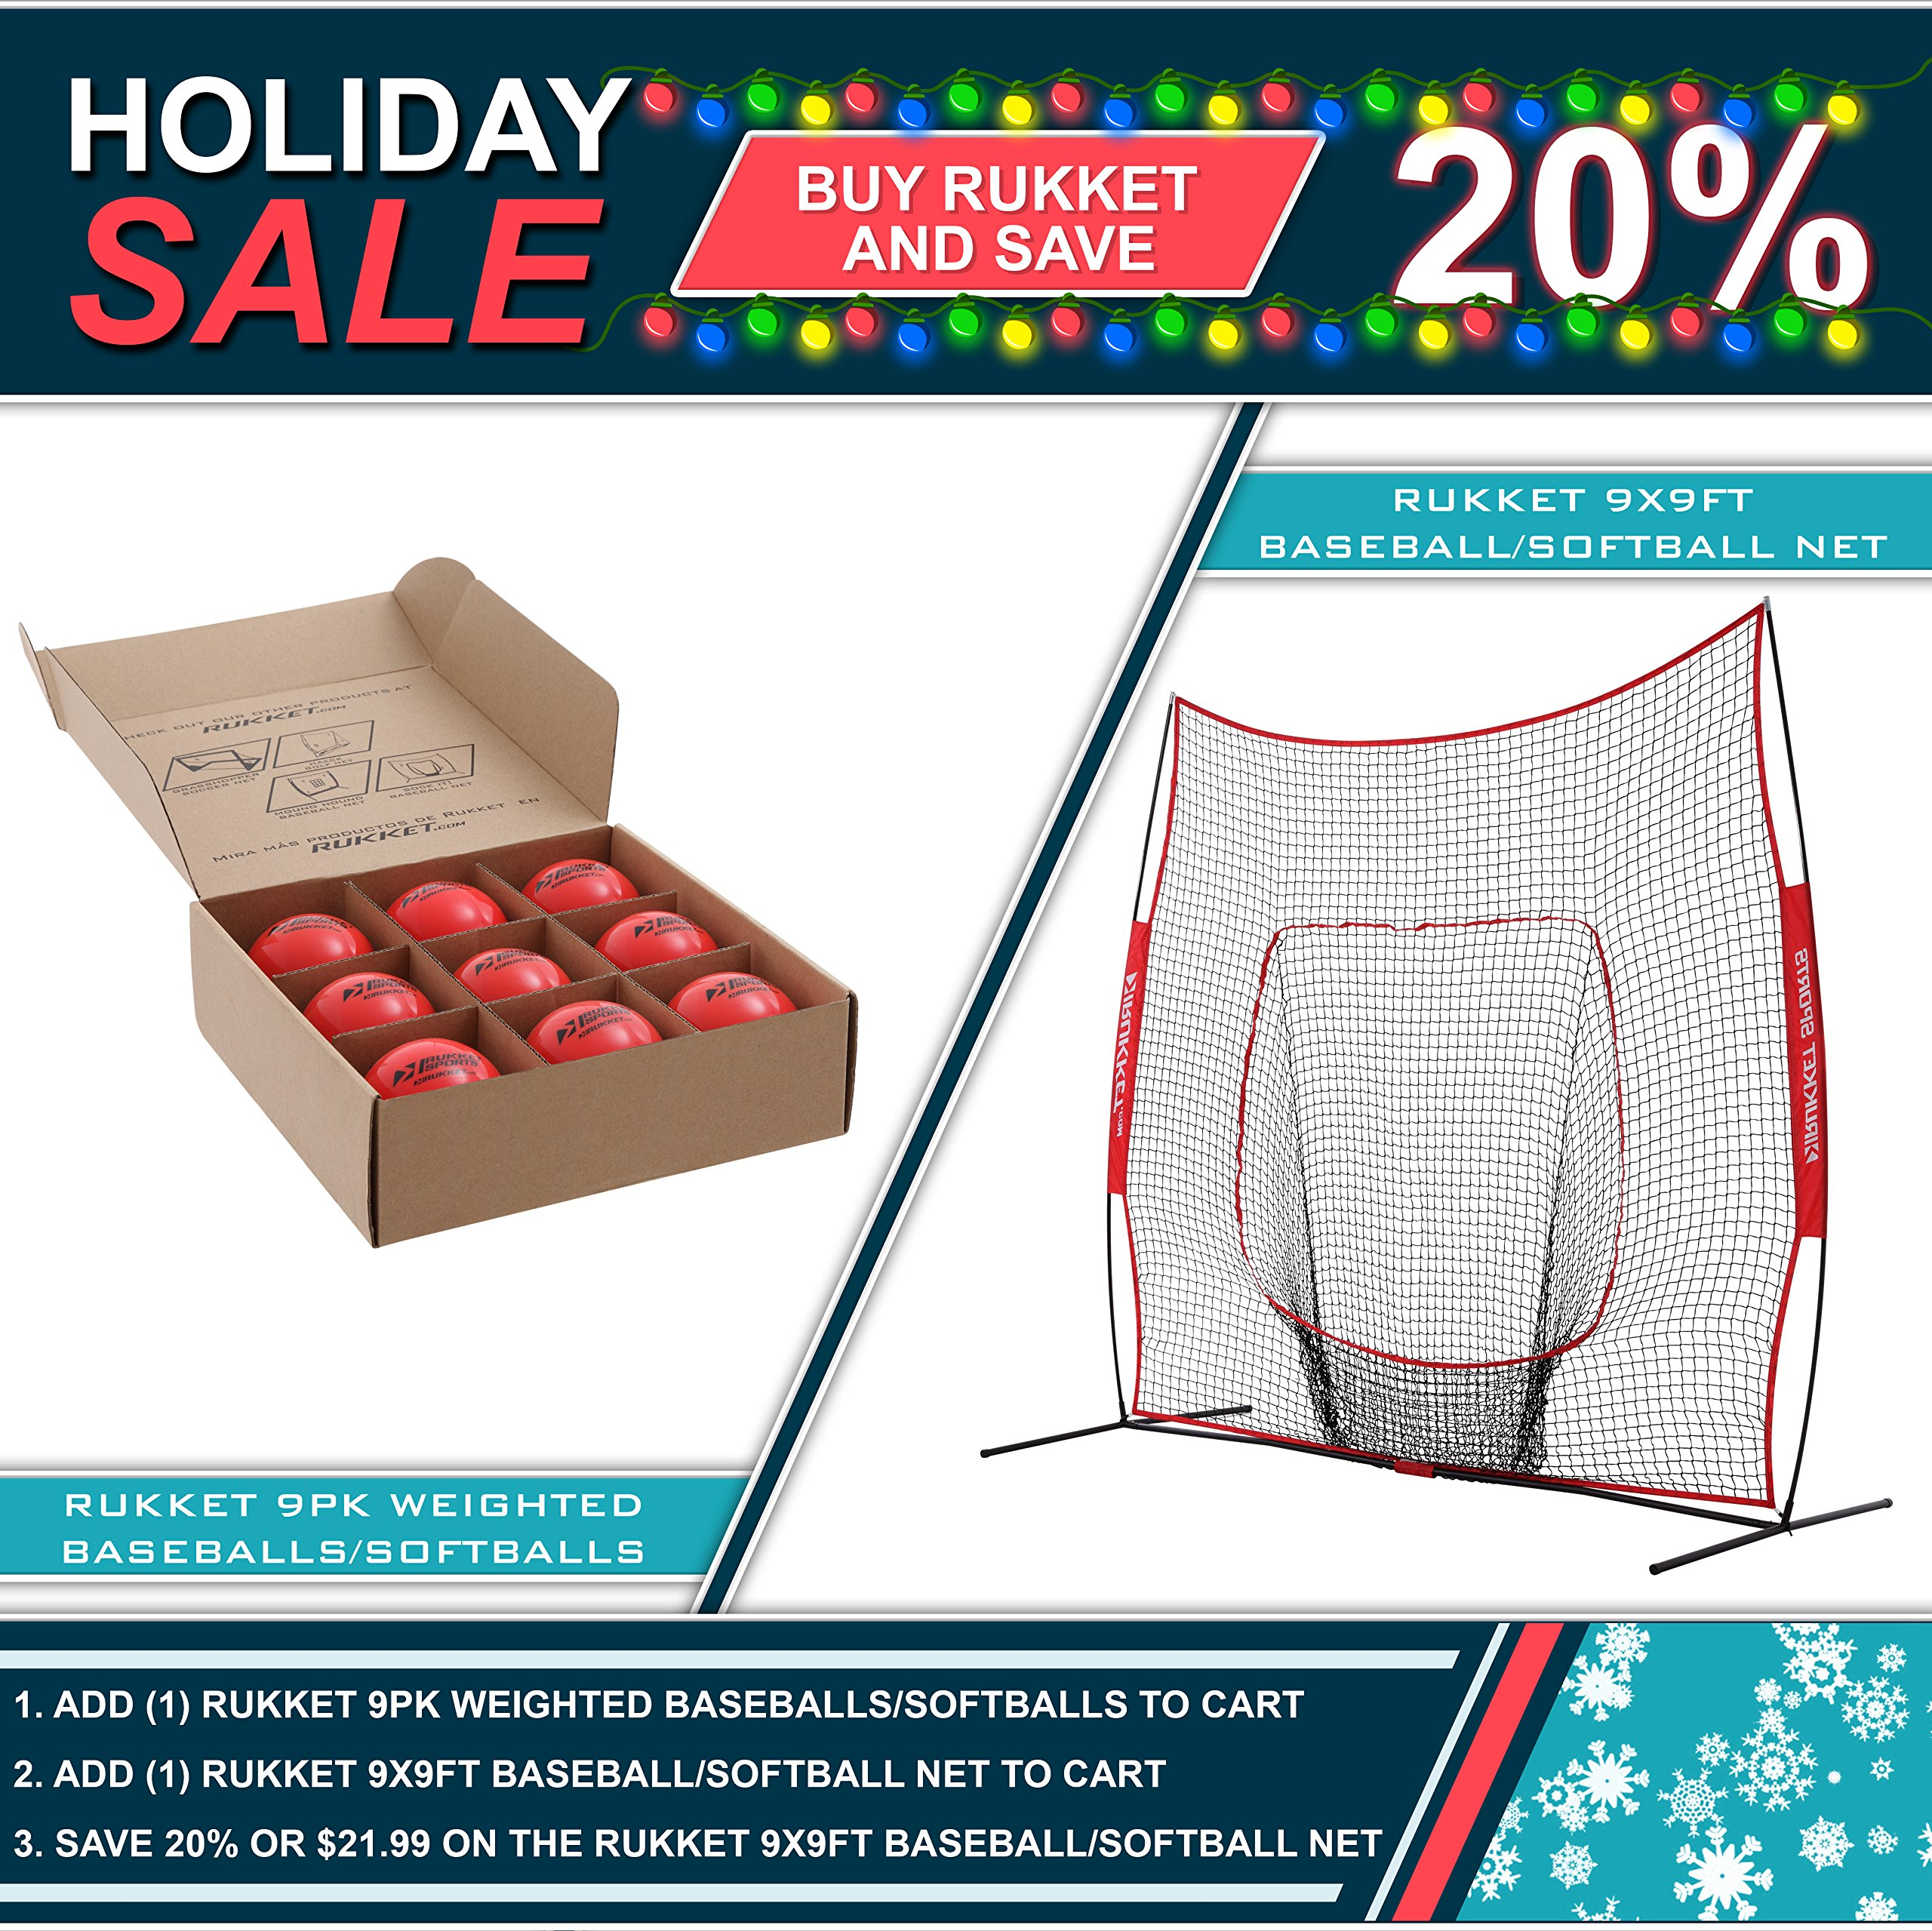 Rukket 9x9 Baseball / Softball Net   Practice Hitting, Pitching, Batting and Catching   Backstop Screen Equipment Training Aids   Includes Carry Bag